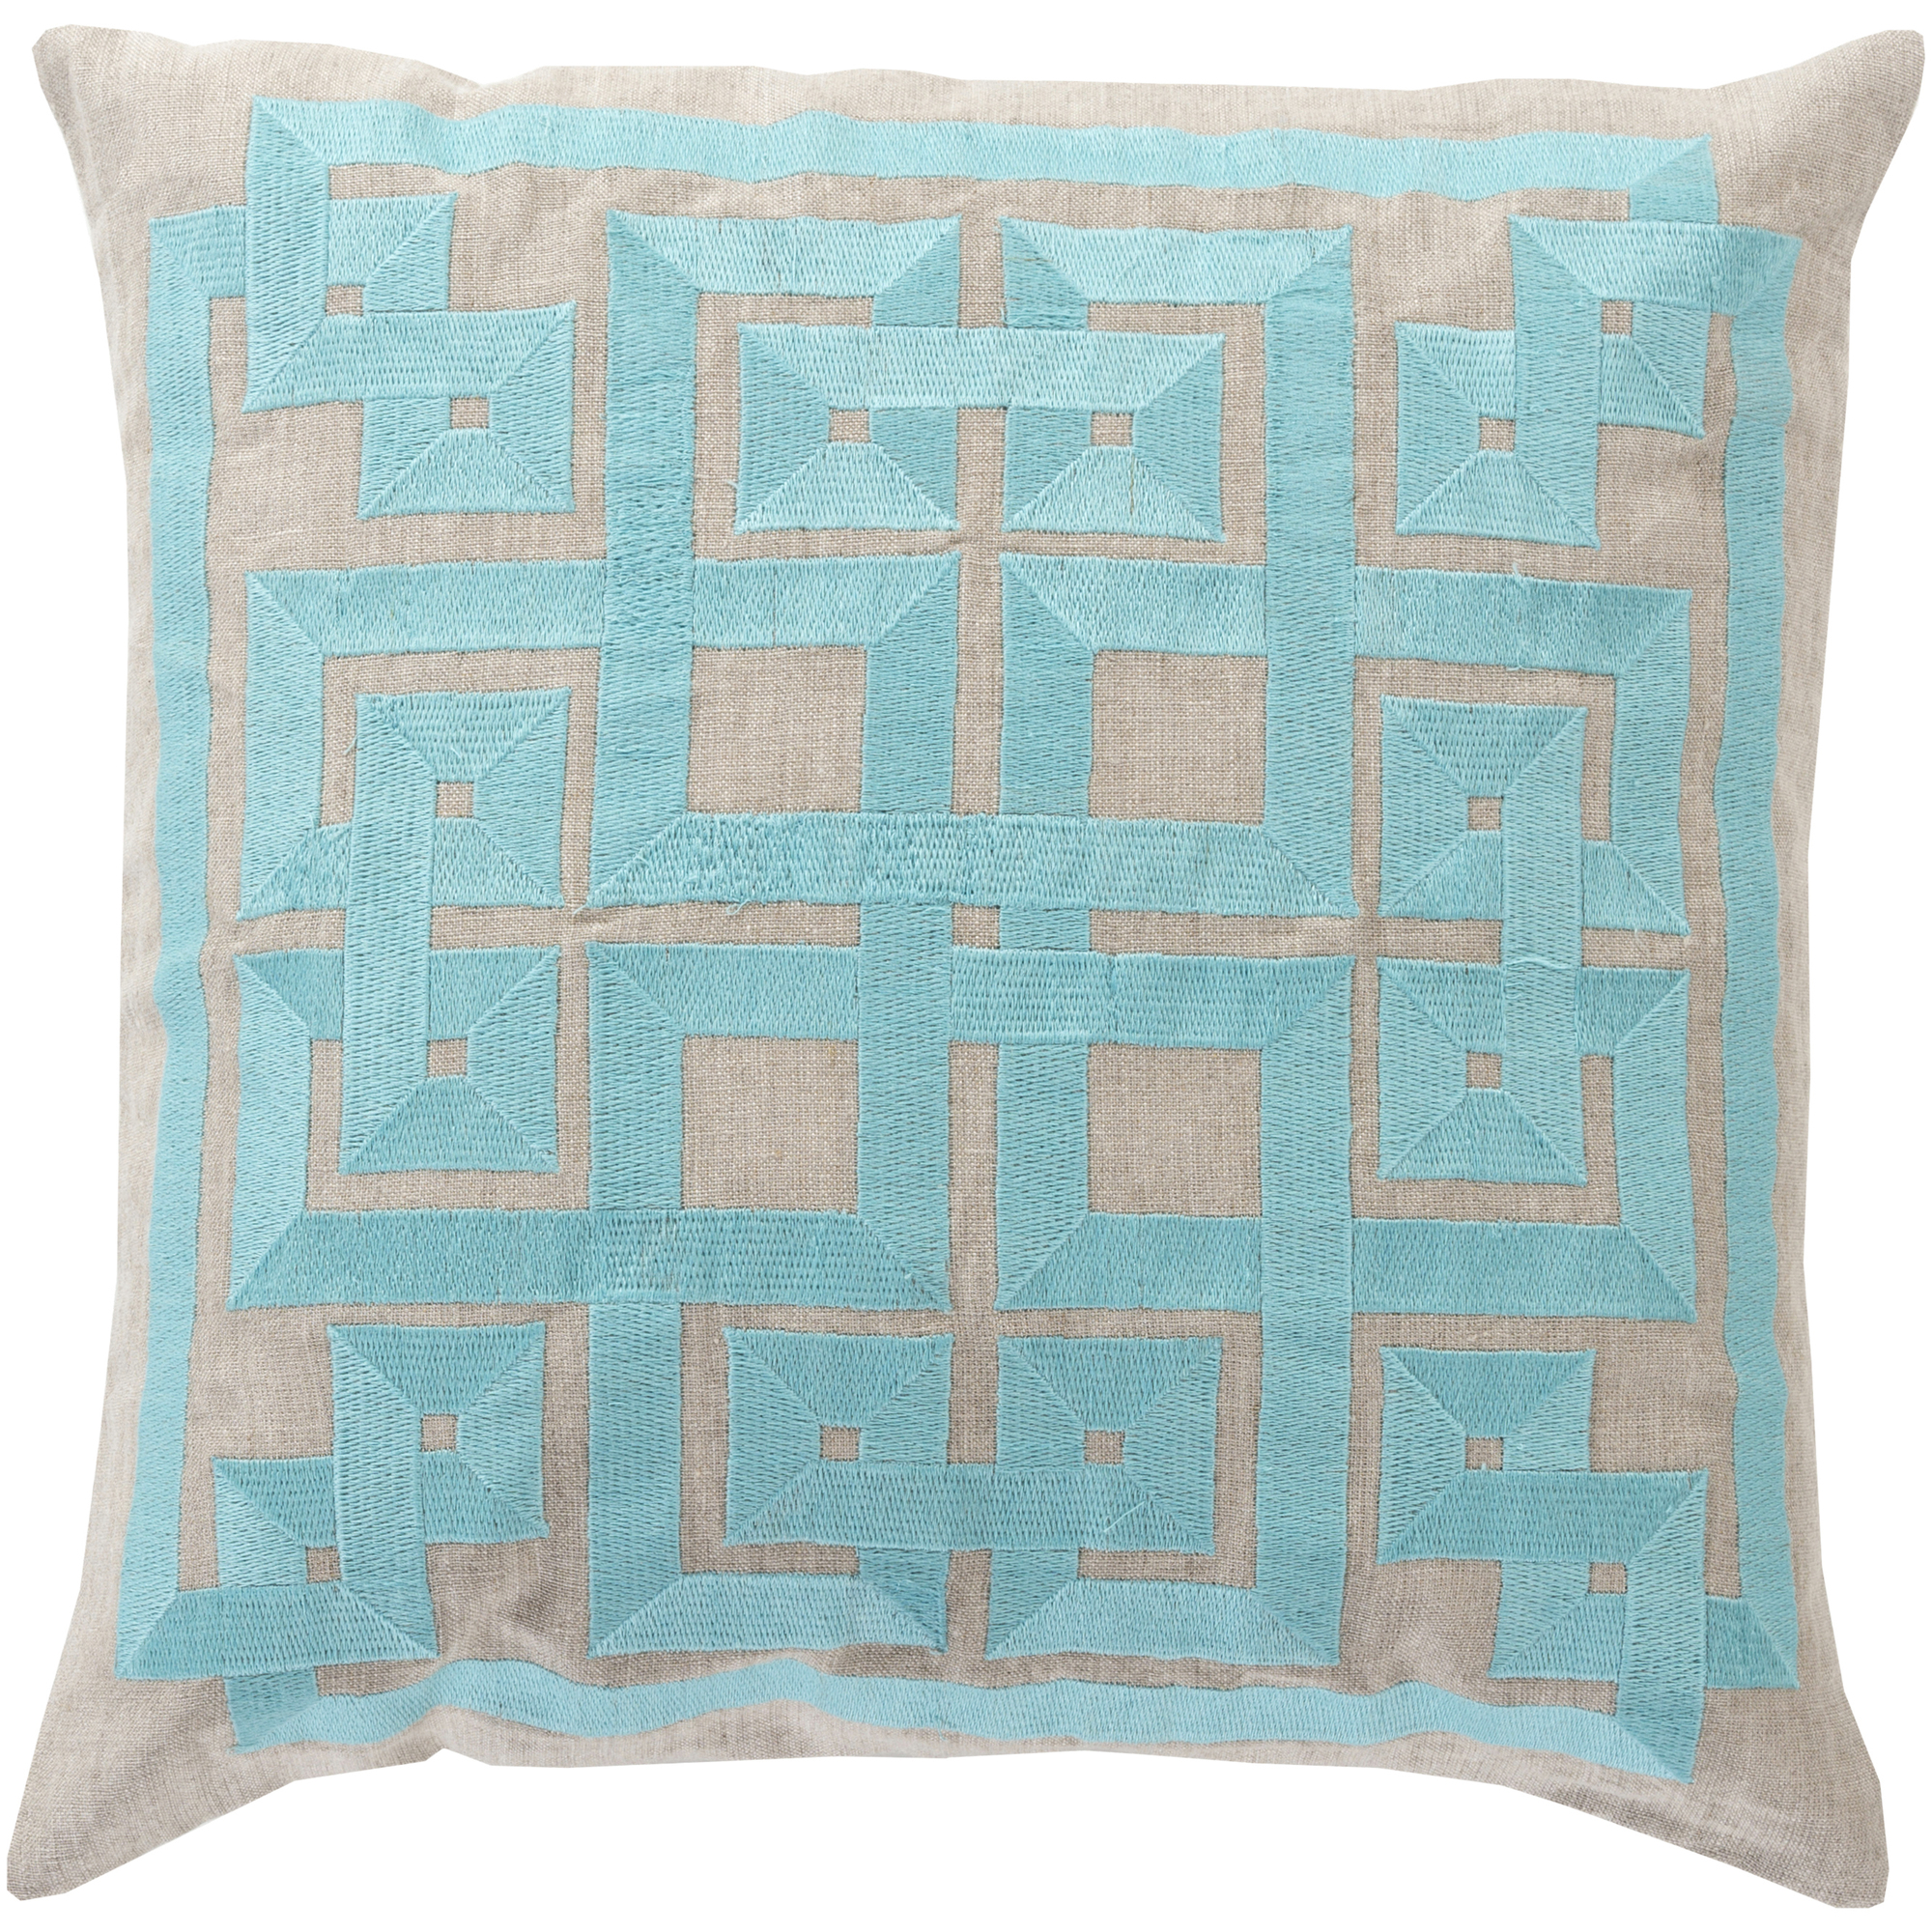 "Art of Knot Chieti 22"" x 22"" Pillow (with Down Fill)"